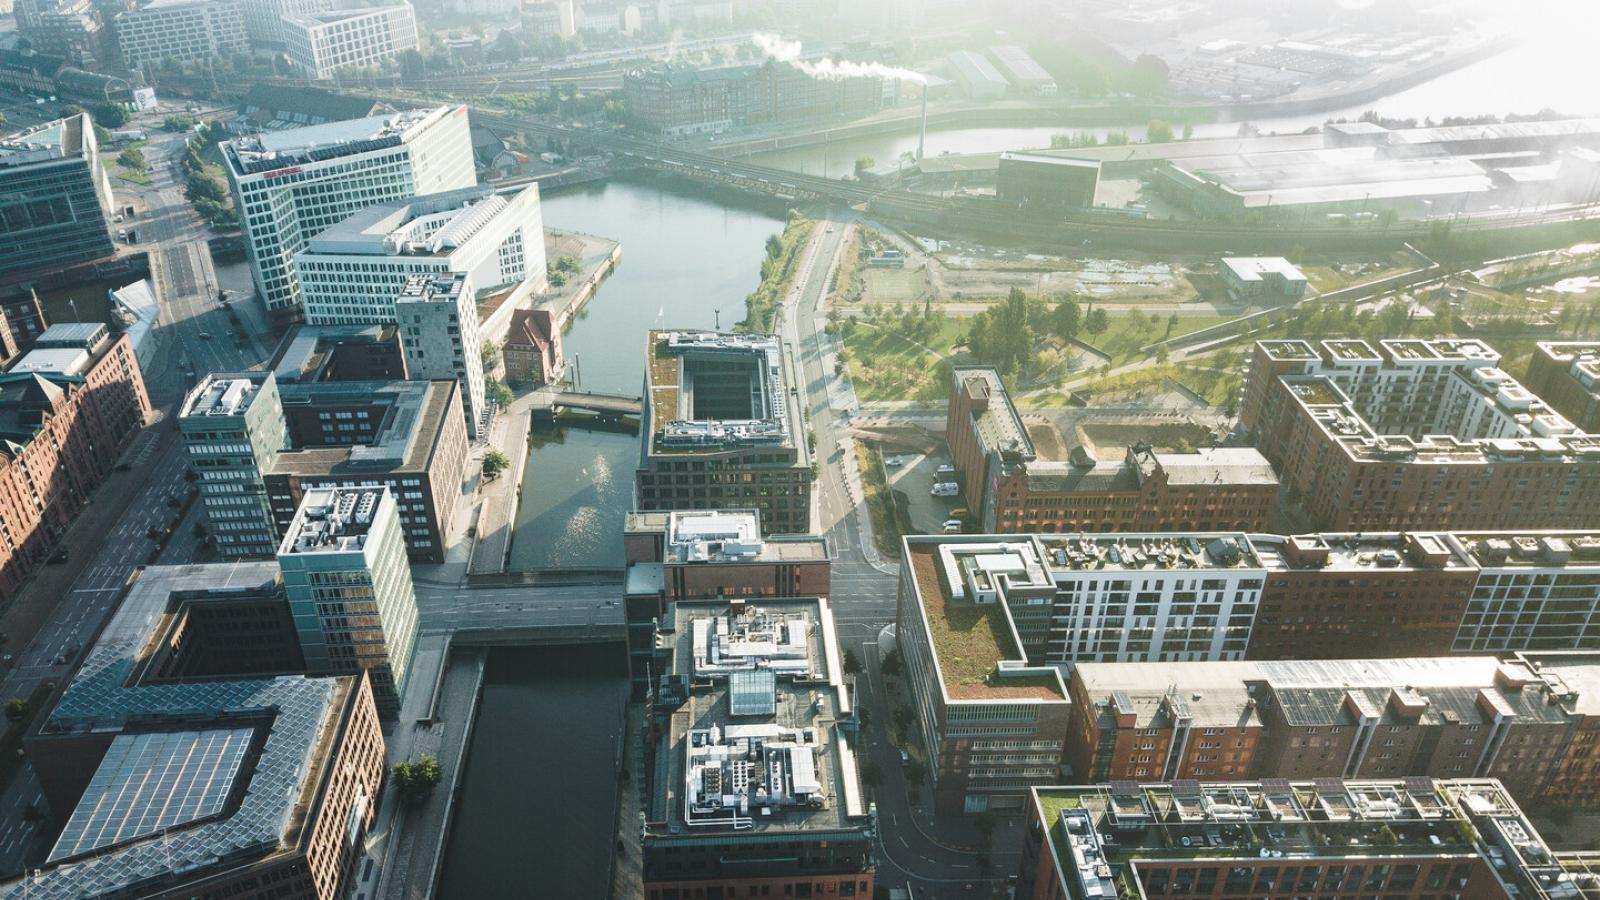 Aerial view of HafenCity